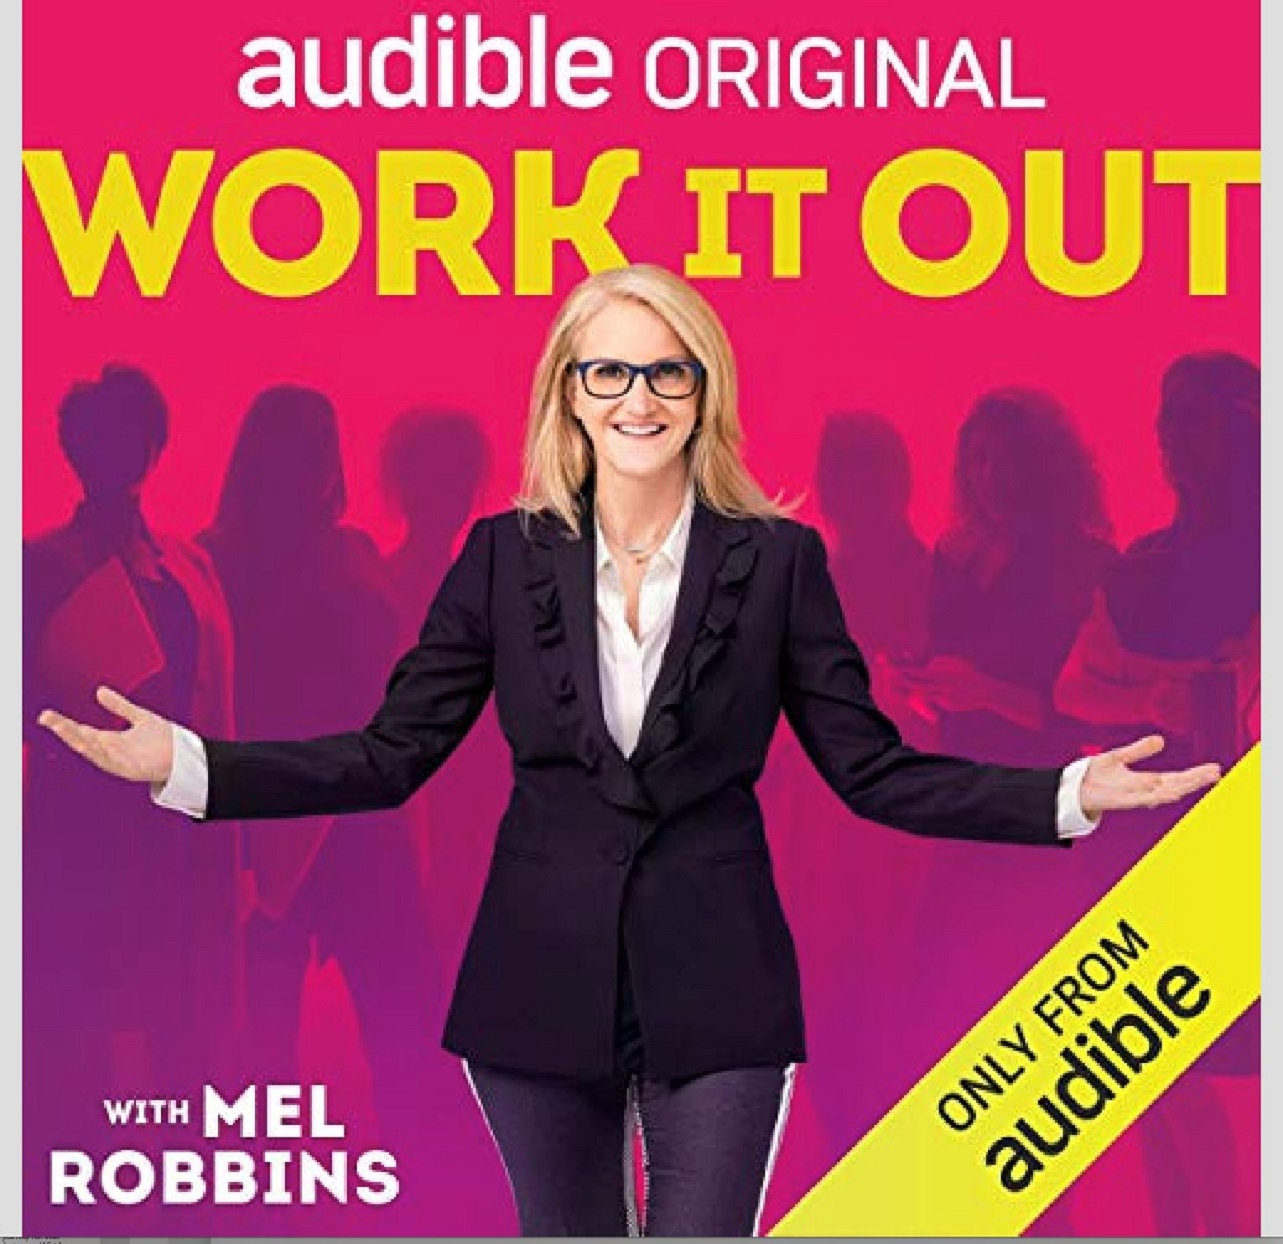 2019 holiday gift guide Audible Subscription Original WORK IT OUT